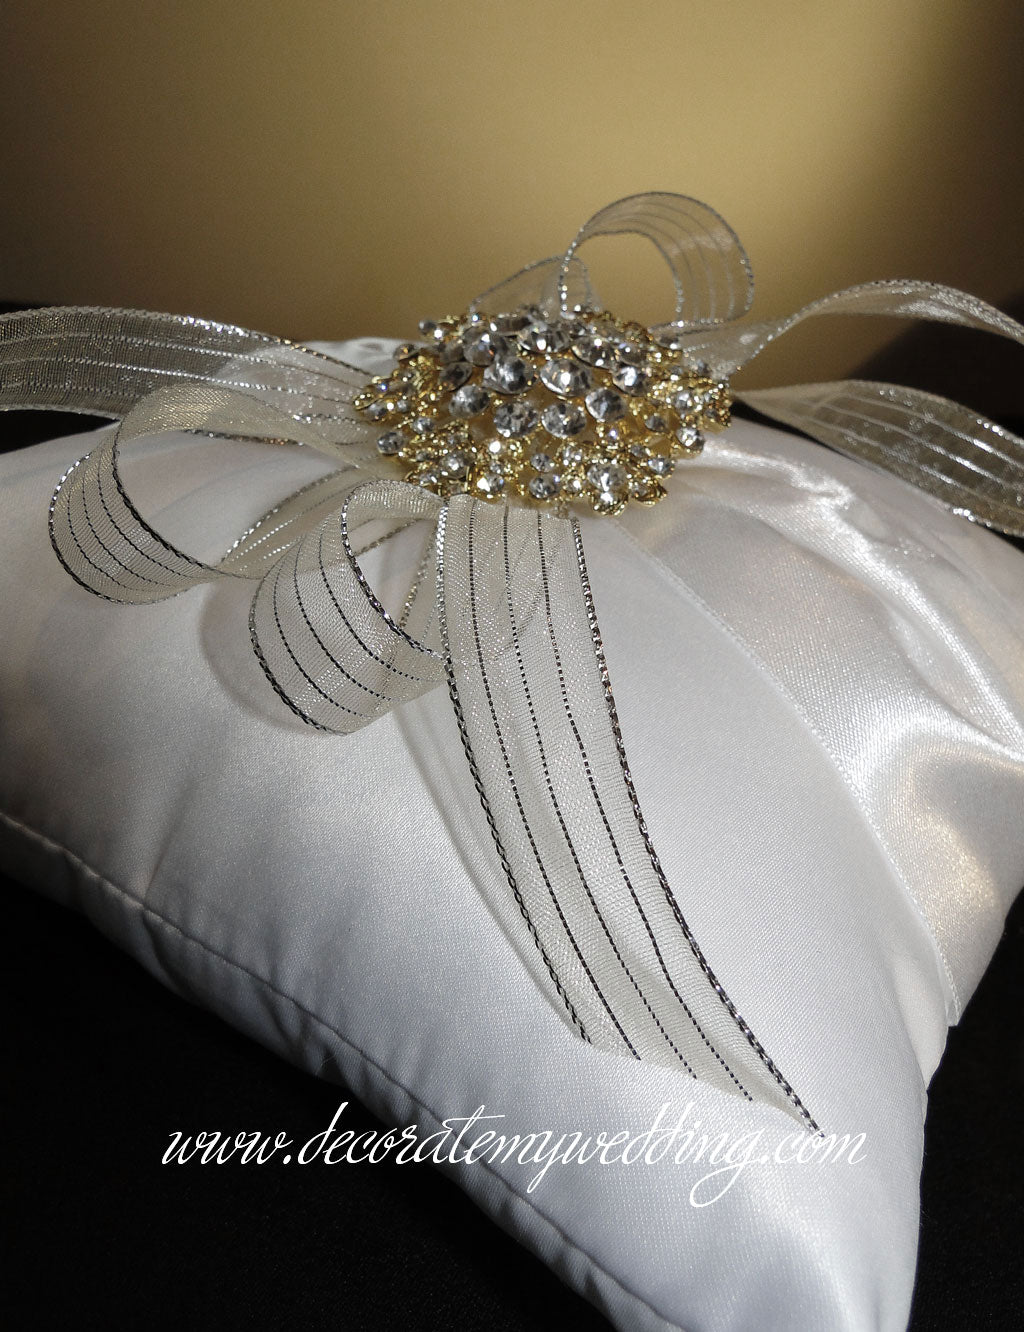 Ring bearer pillow trimmed with metallic gold ribbons and a rhinestone brooch.